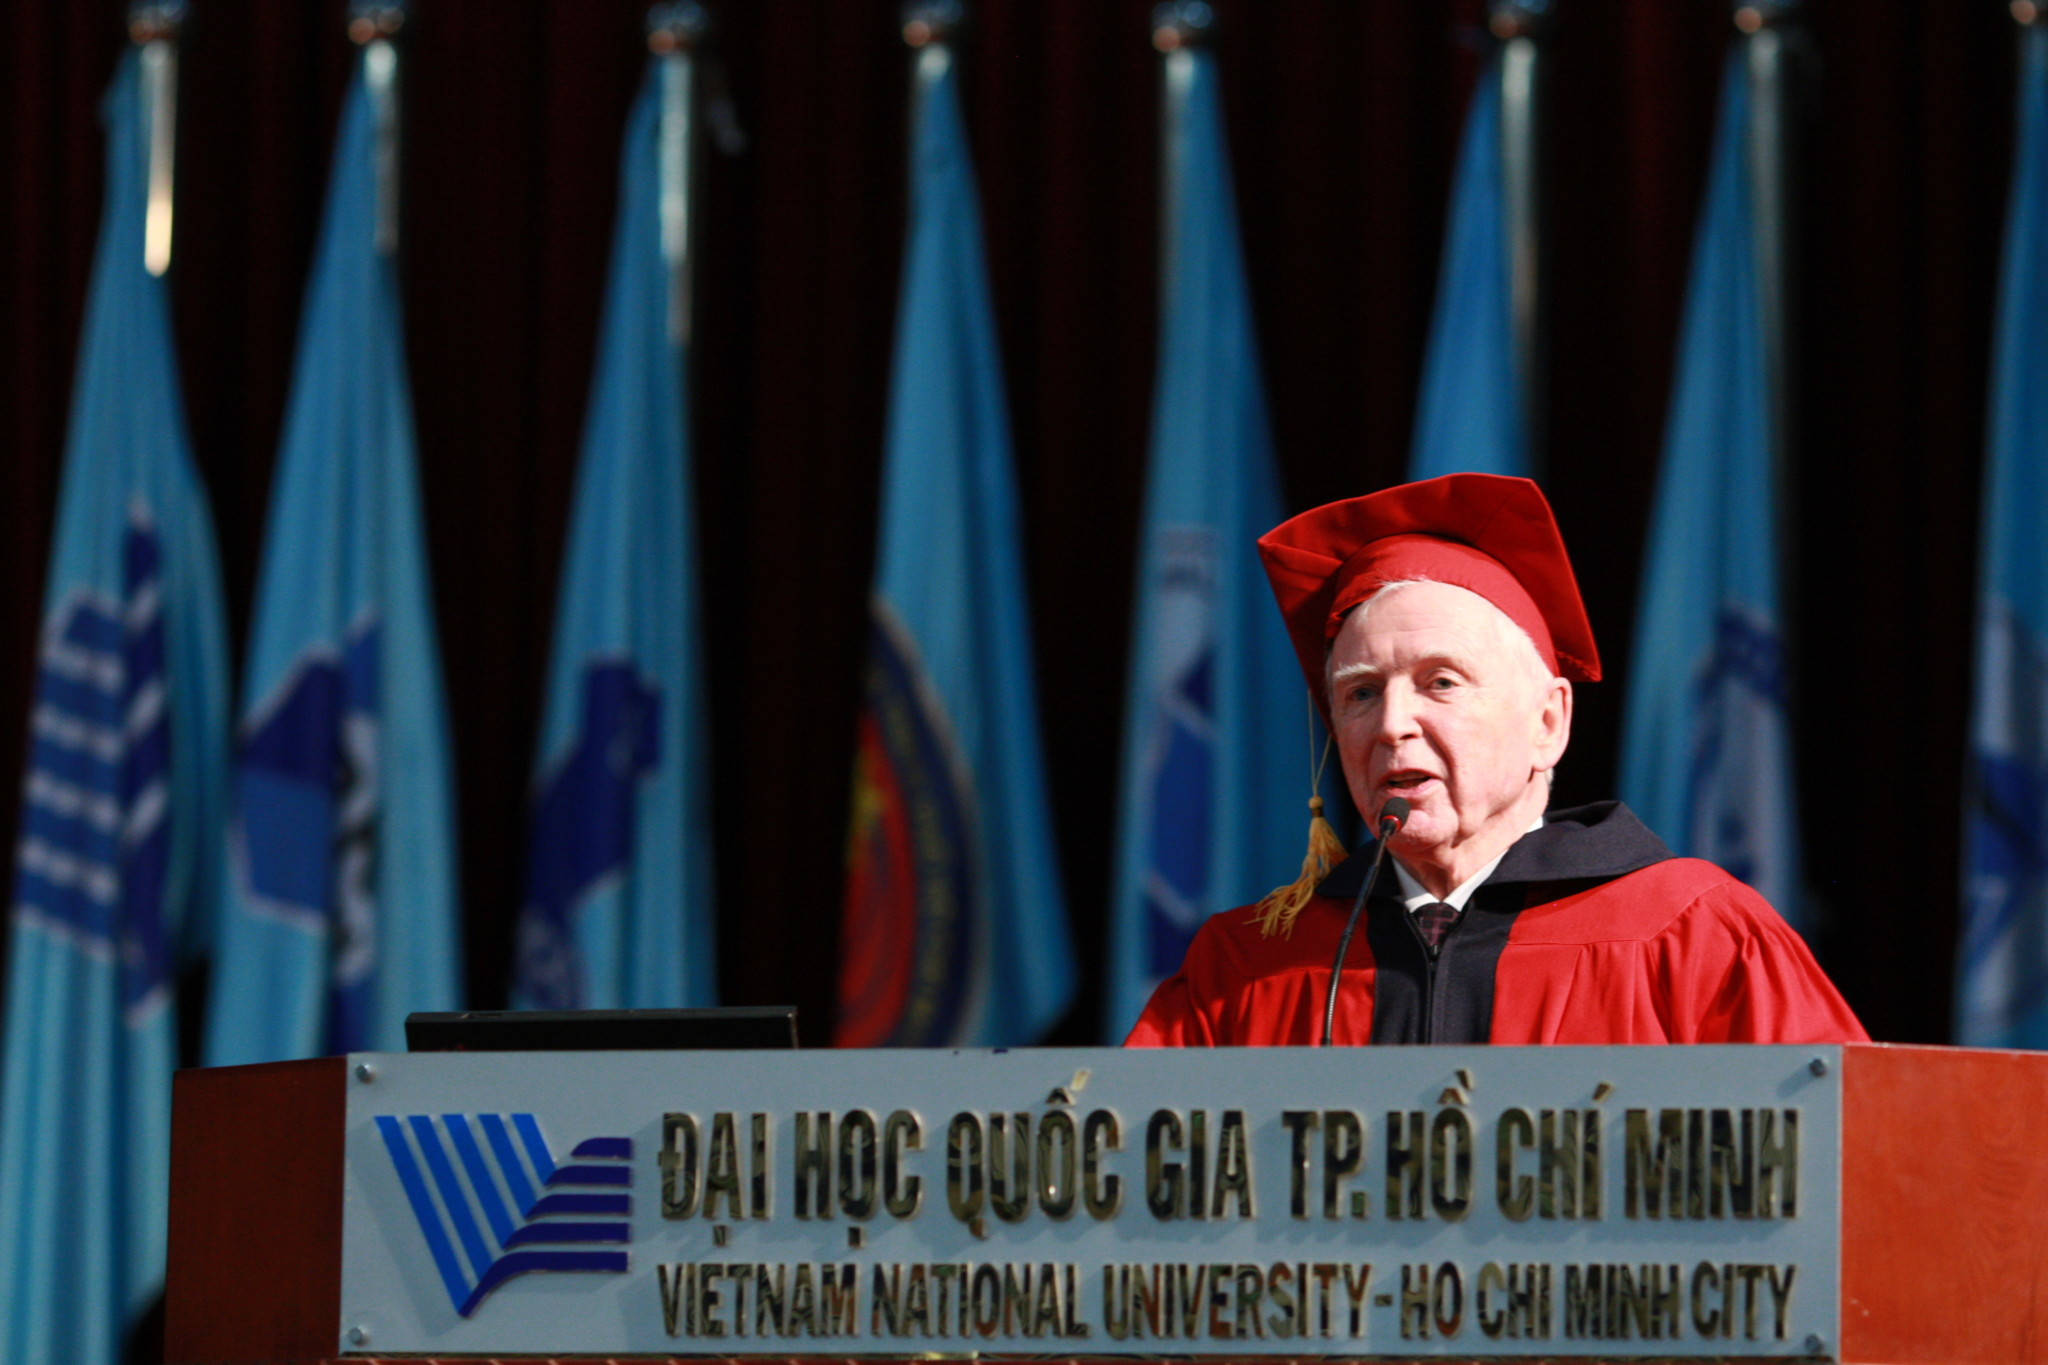 Medicine Nobel Laureate Prof. Harald zur Hausen at the Vietnam National University in Ho Chi Minh City